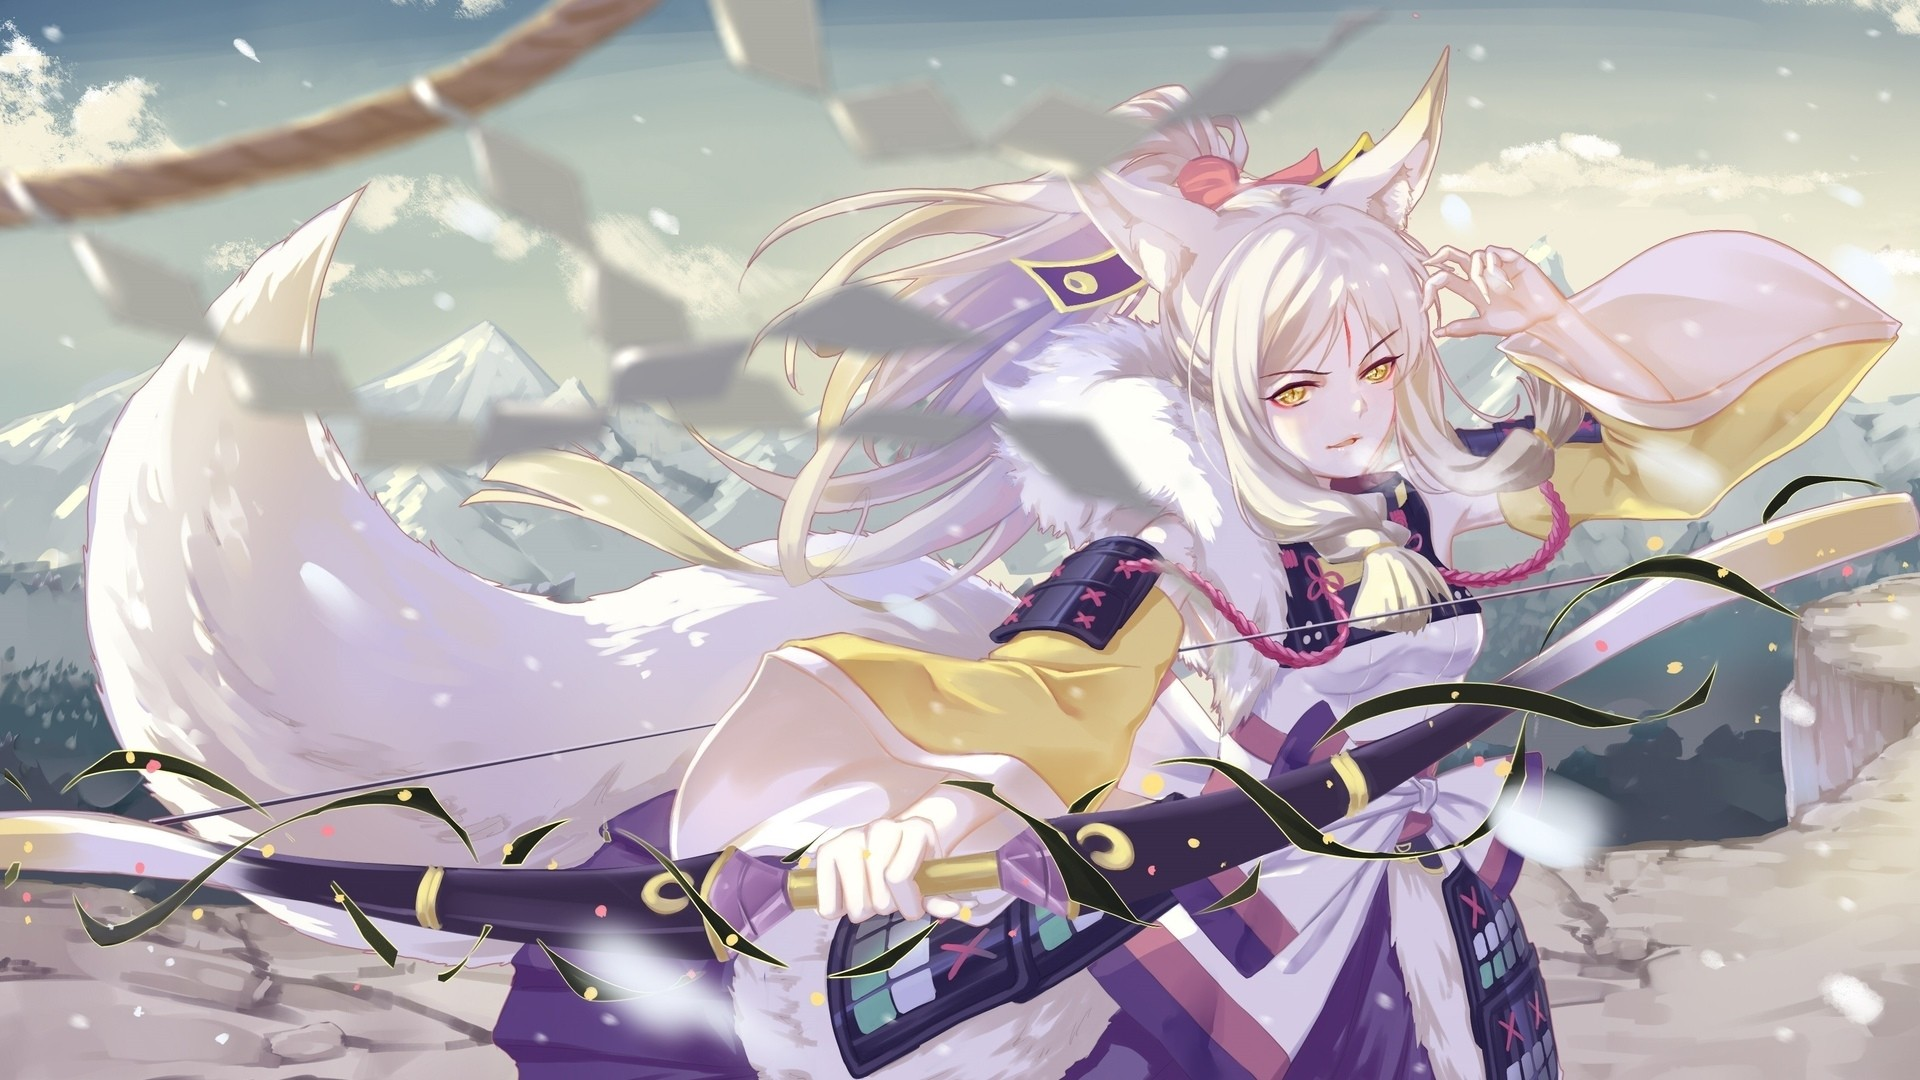 White Hair Anime Girl Image